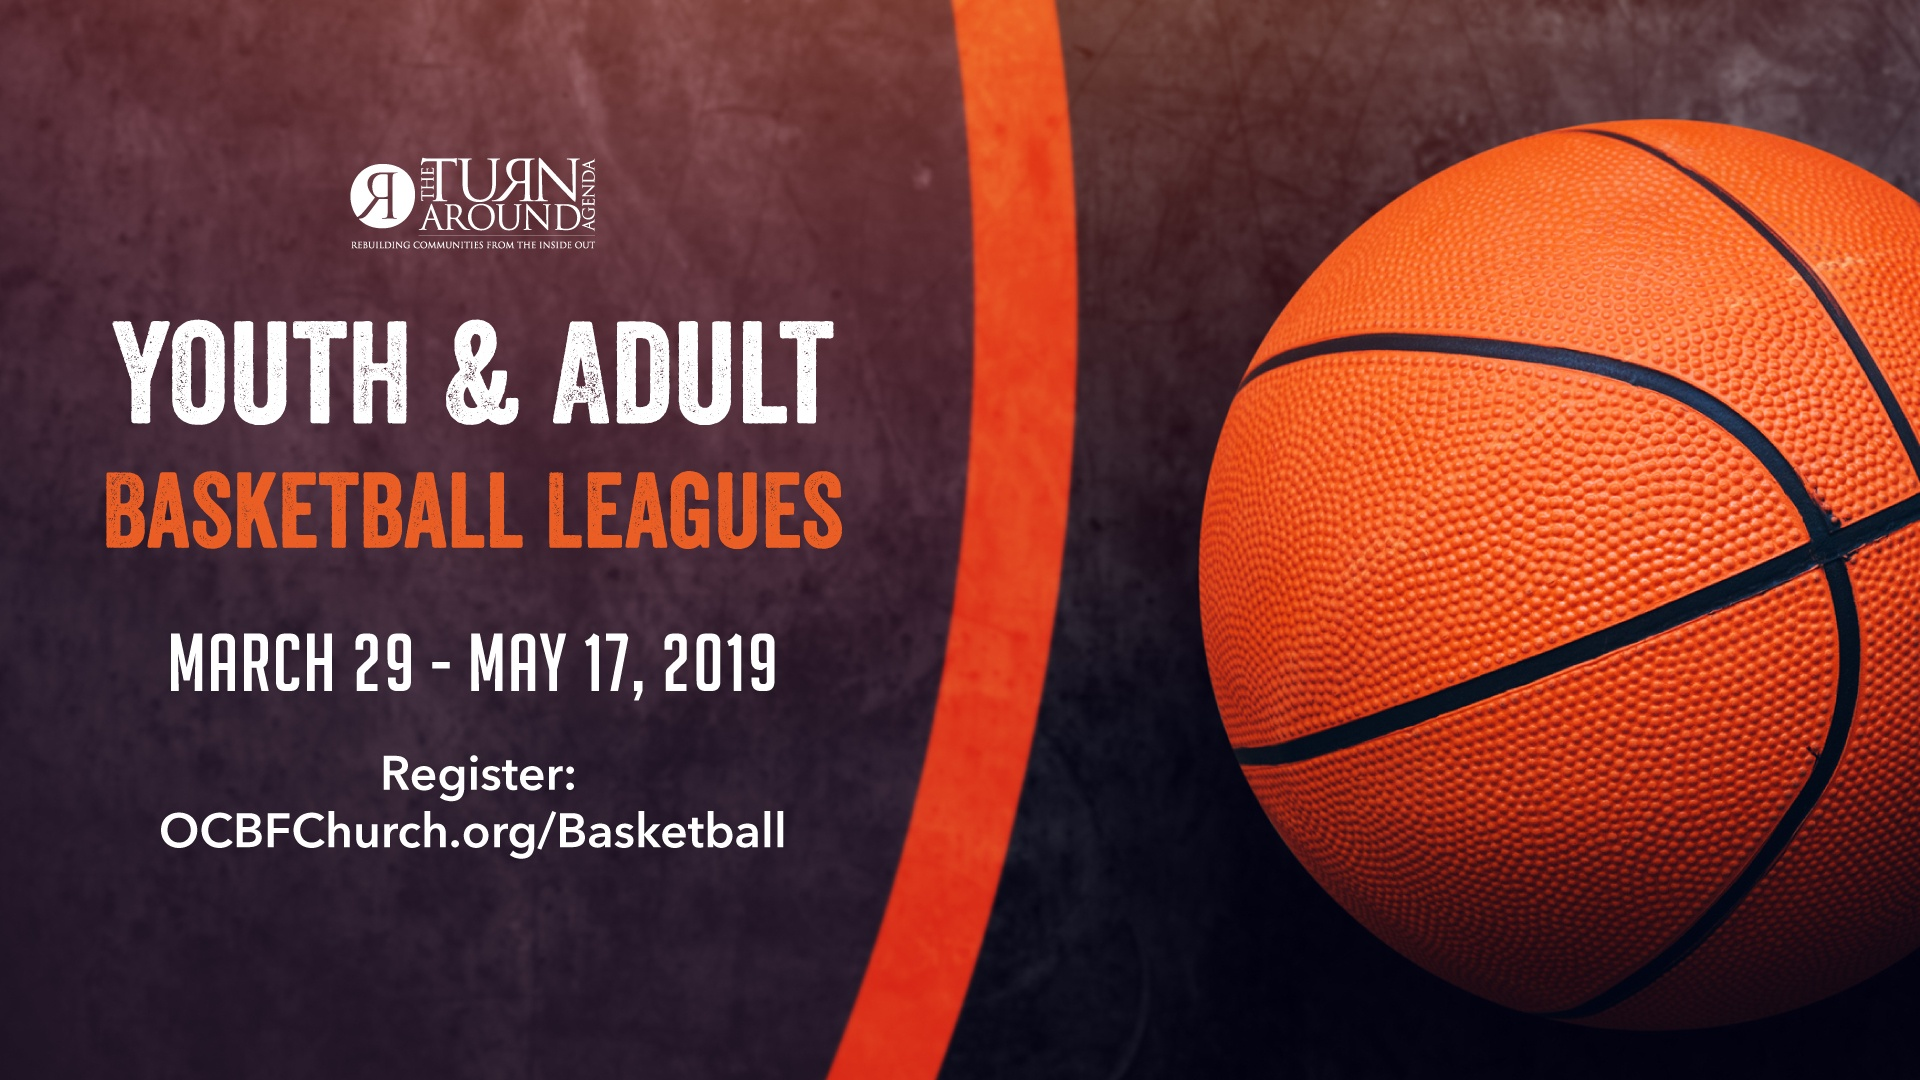 Youth and Adult Basketball